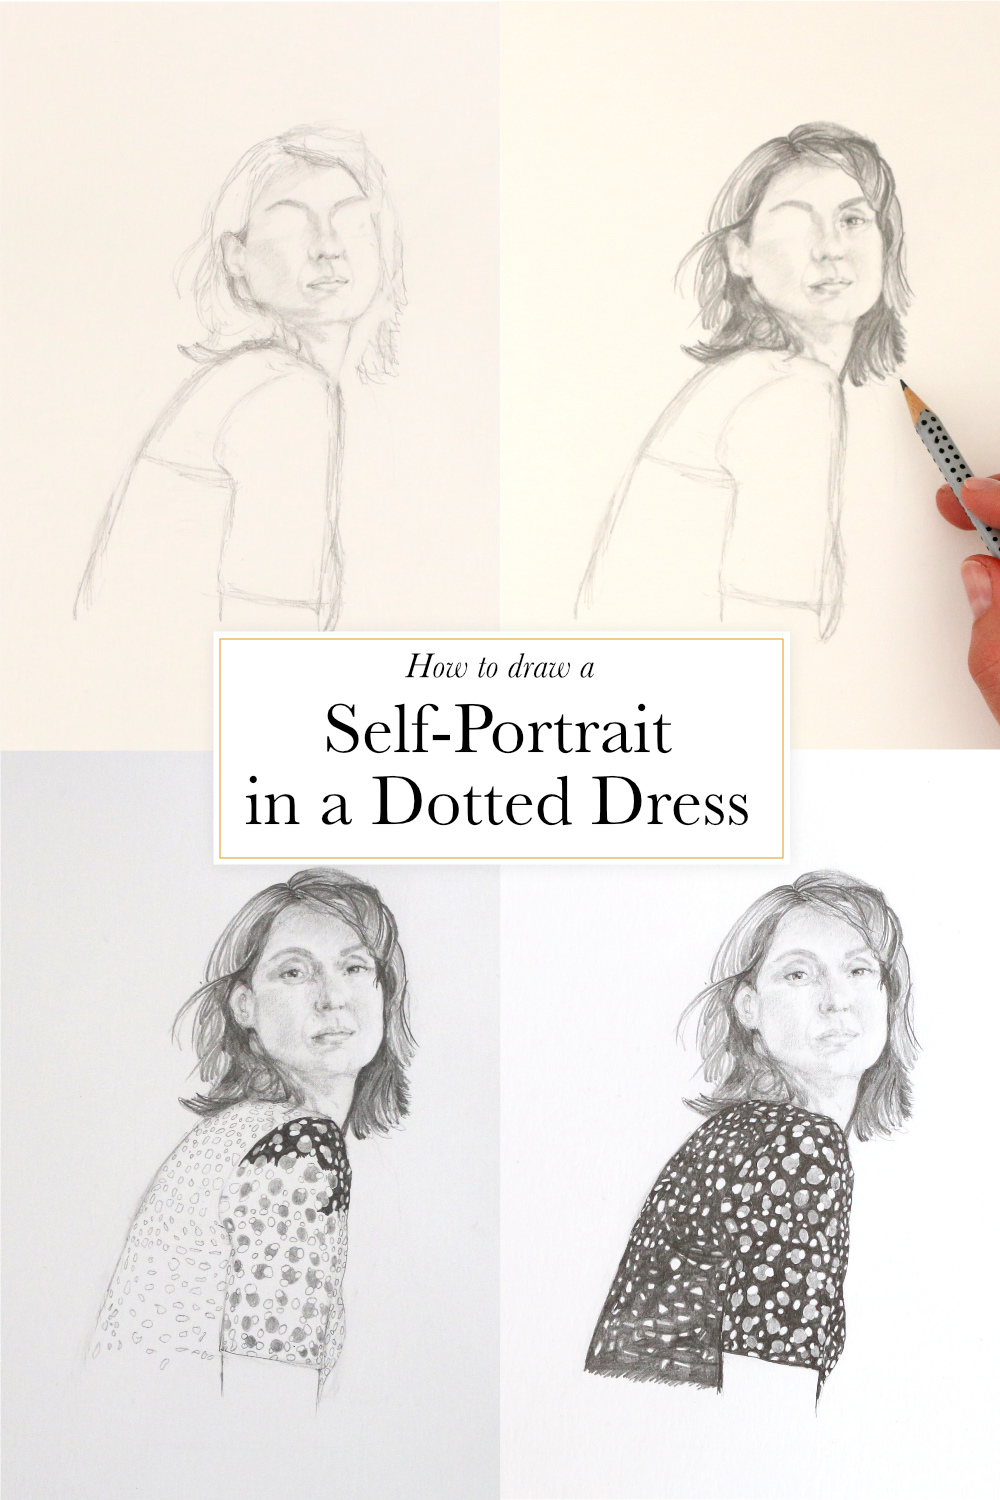 How to draw a self-portrait in a dotted dress | by The Daily Atelier